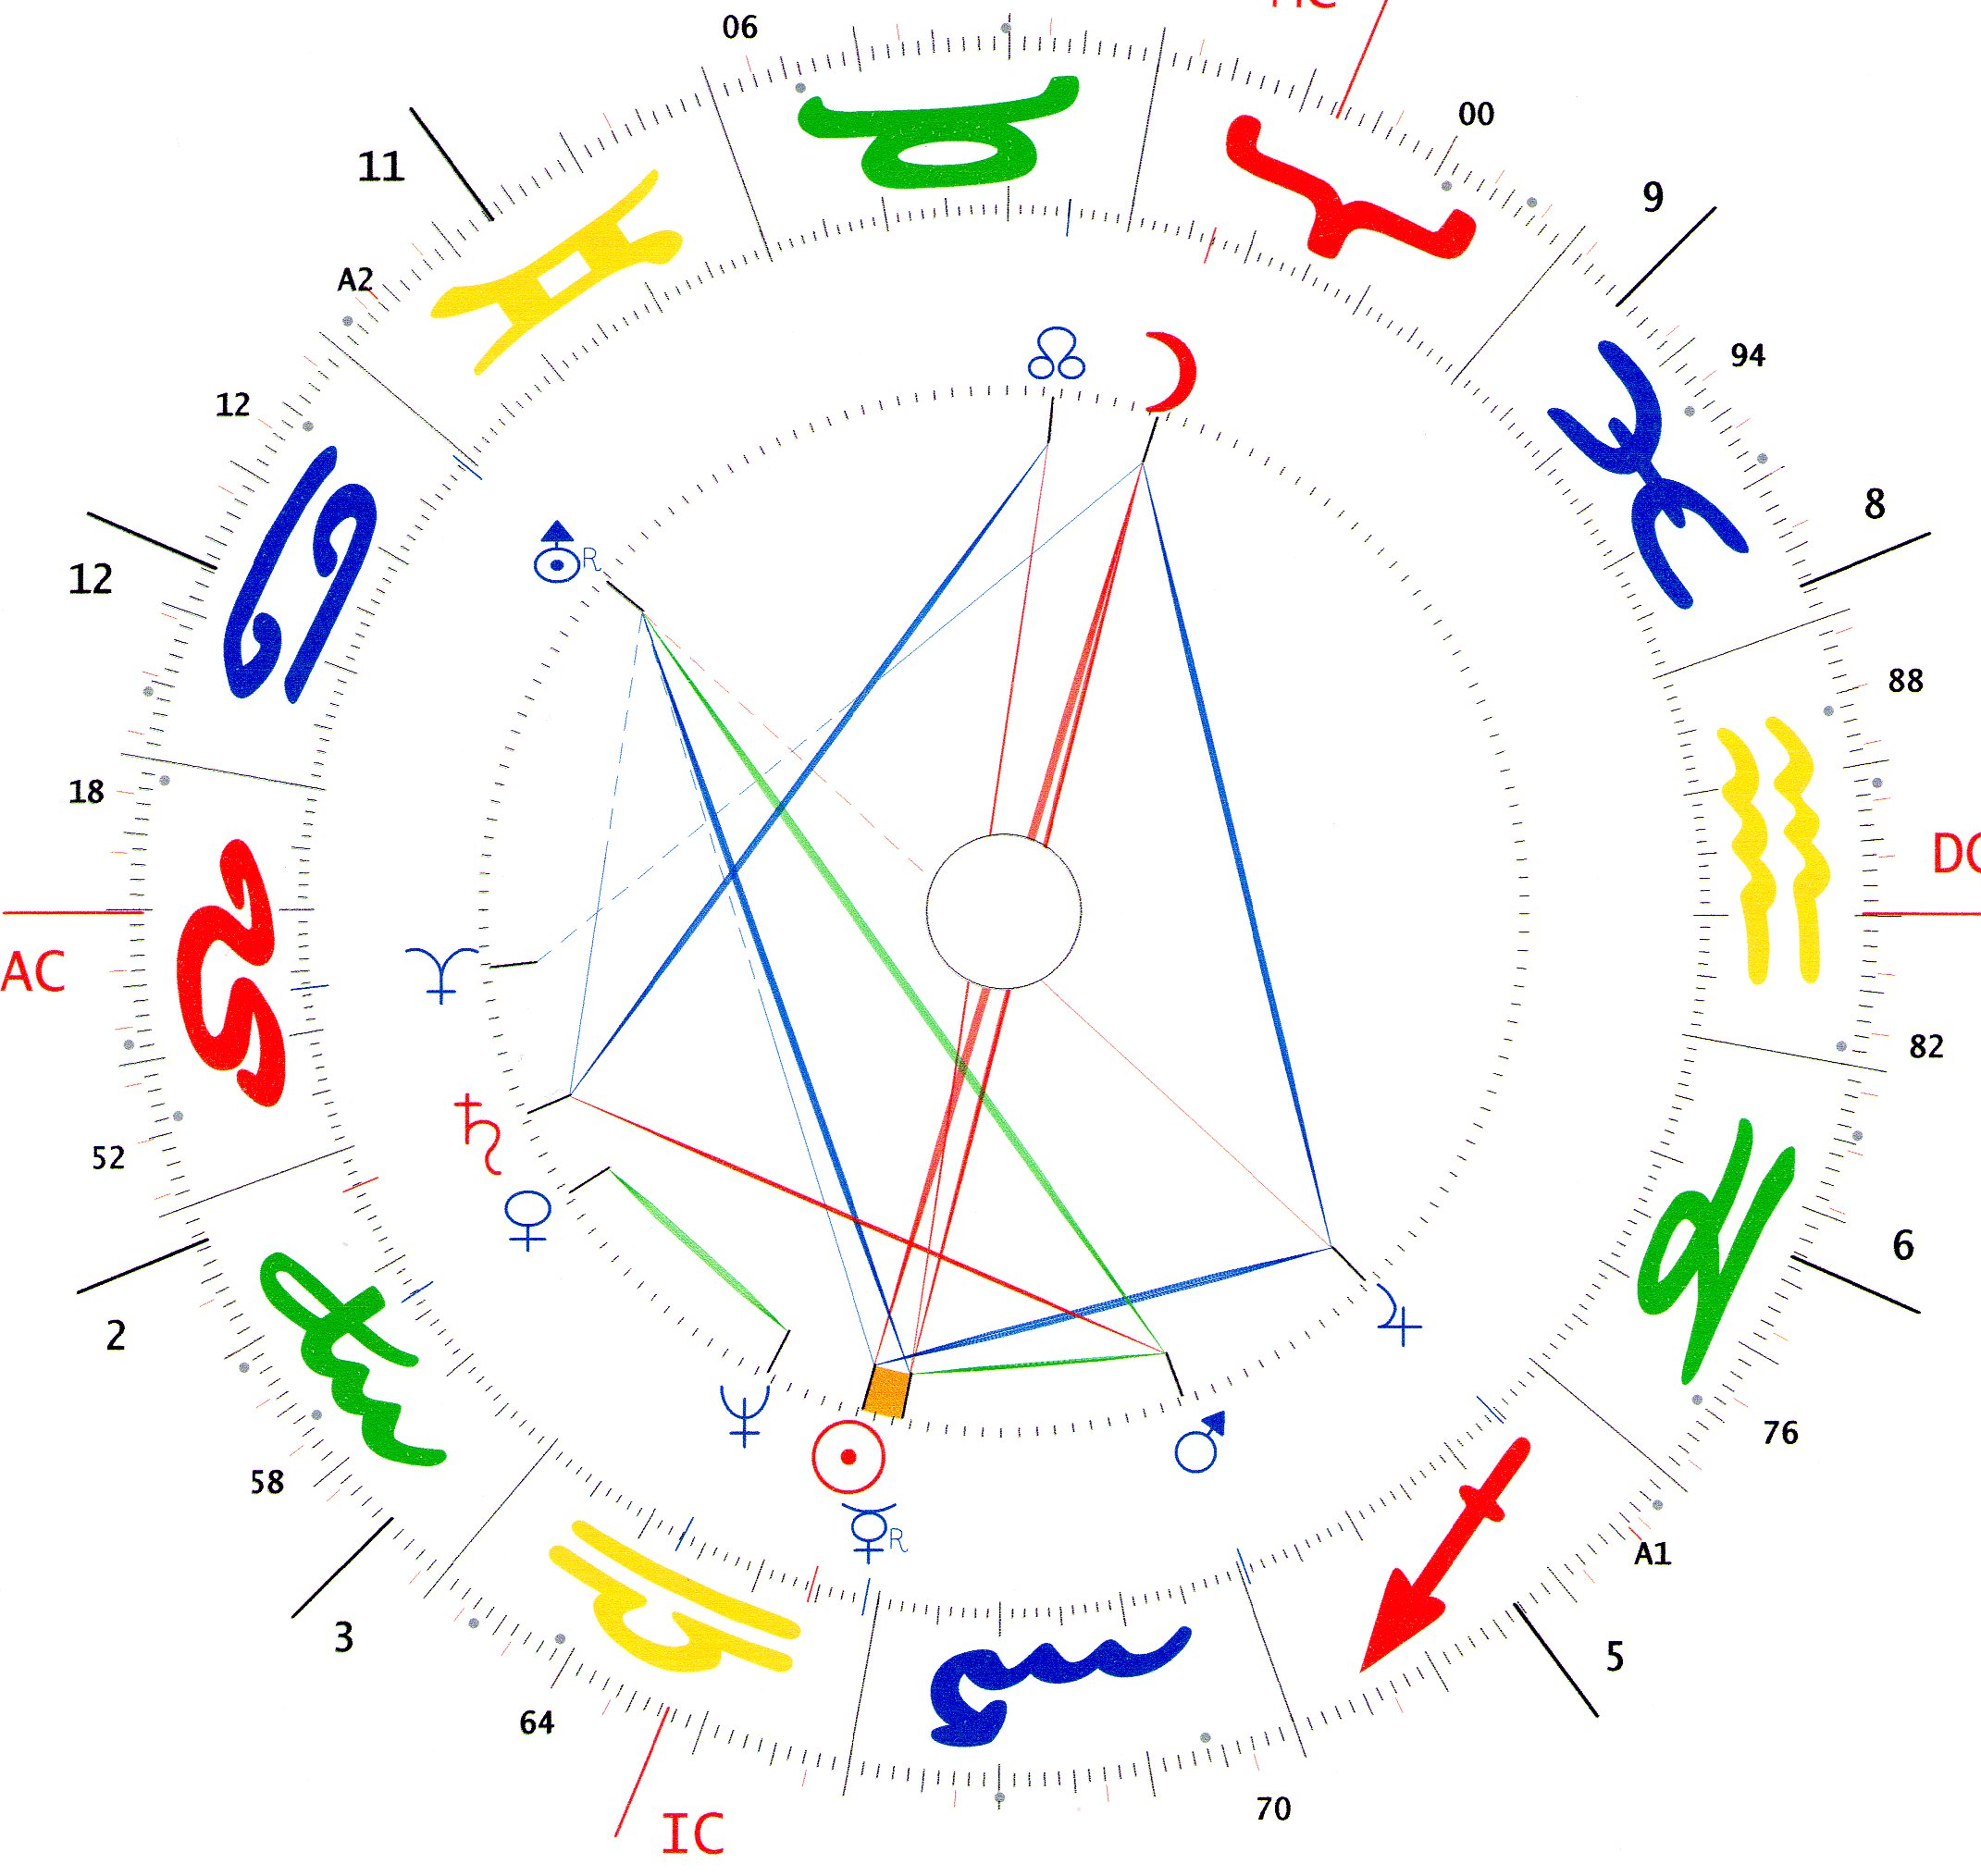 astrological psychosynthesis Astrological psychosynthesis moon • mercury • venus • r • saturn • uranus • neptune• ogers • astrological ogical traditions, types, and logical.